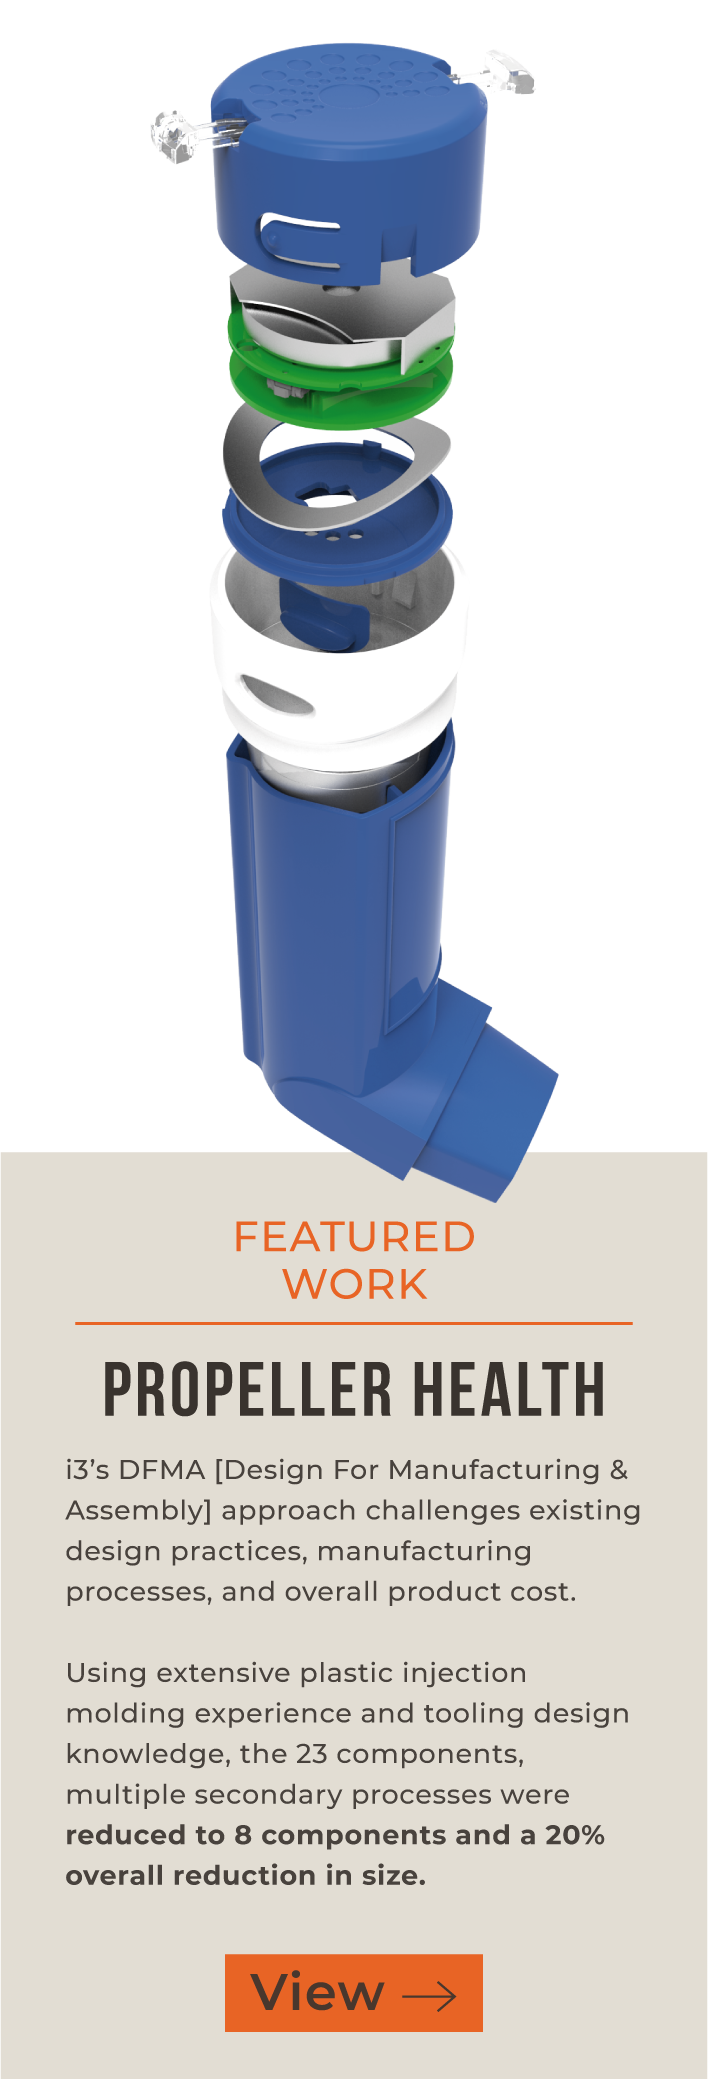 Propeller Health case study